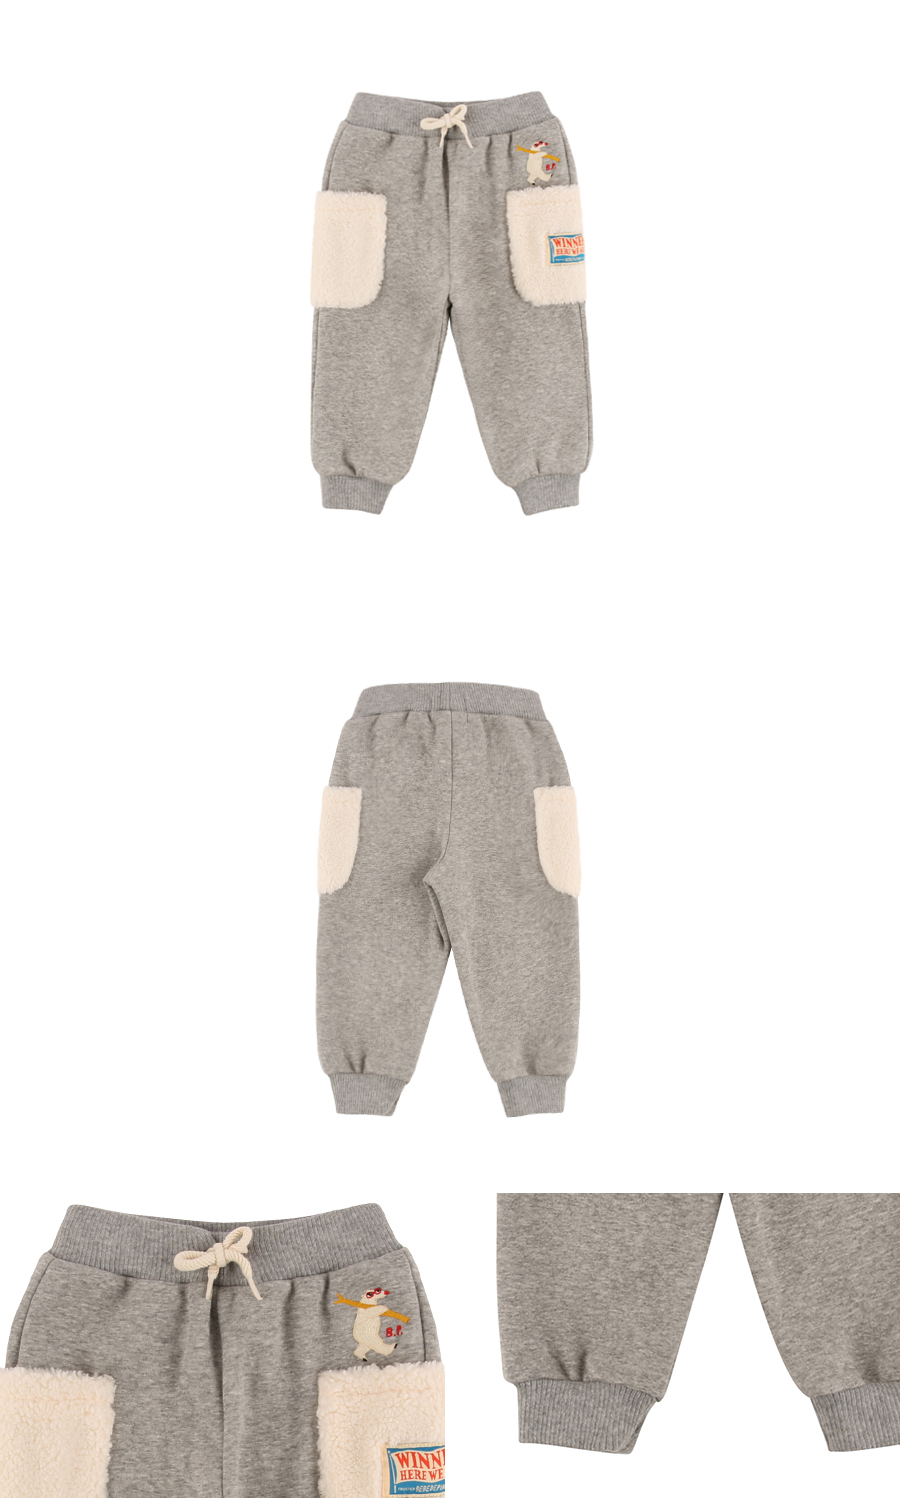 Polar bear baby dumble fur pocket pants 상세 이미지